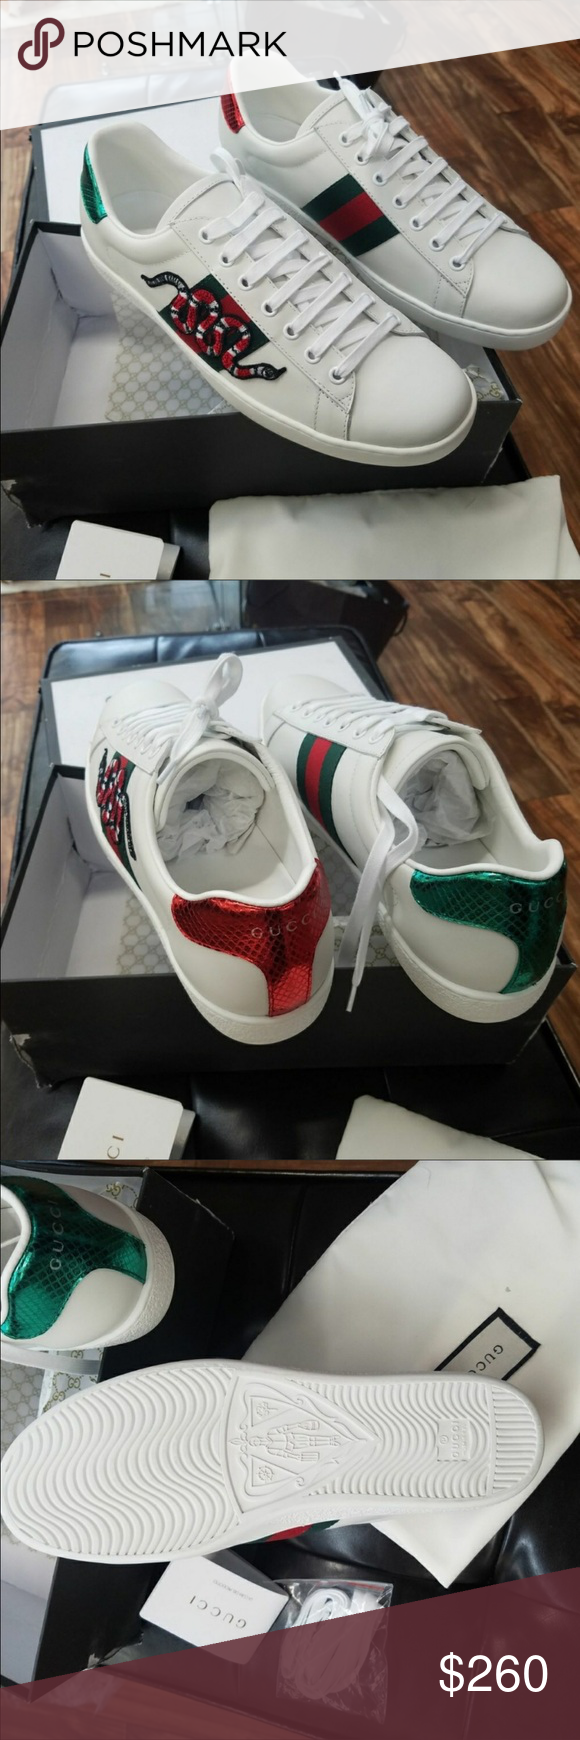 4609883b5 Gucci X Nmd. Authentic Gucci X Adidas Boost Nmd 17ss